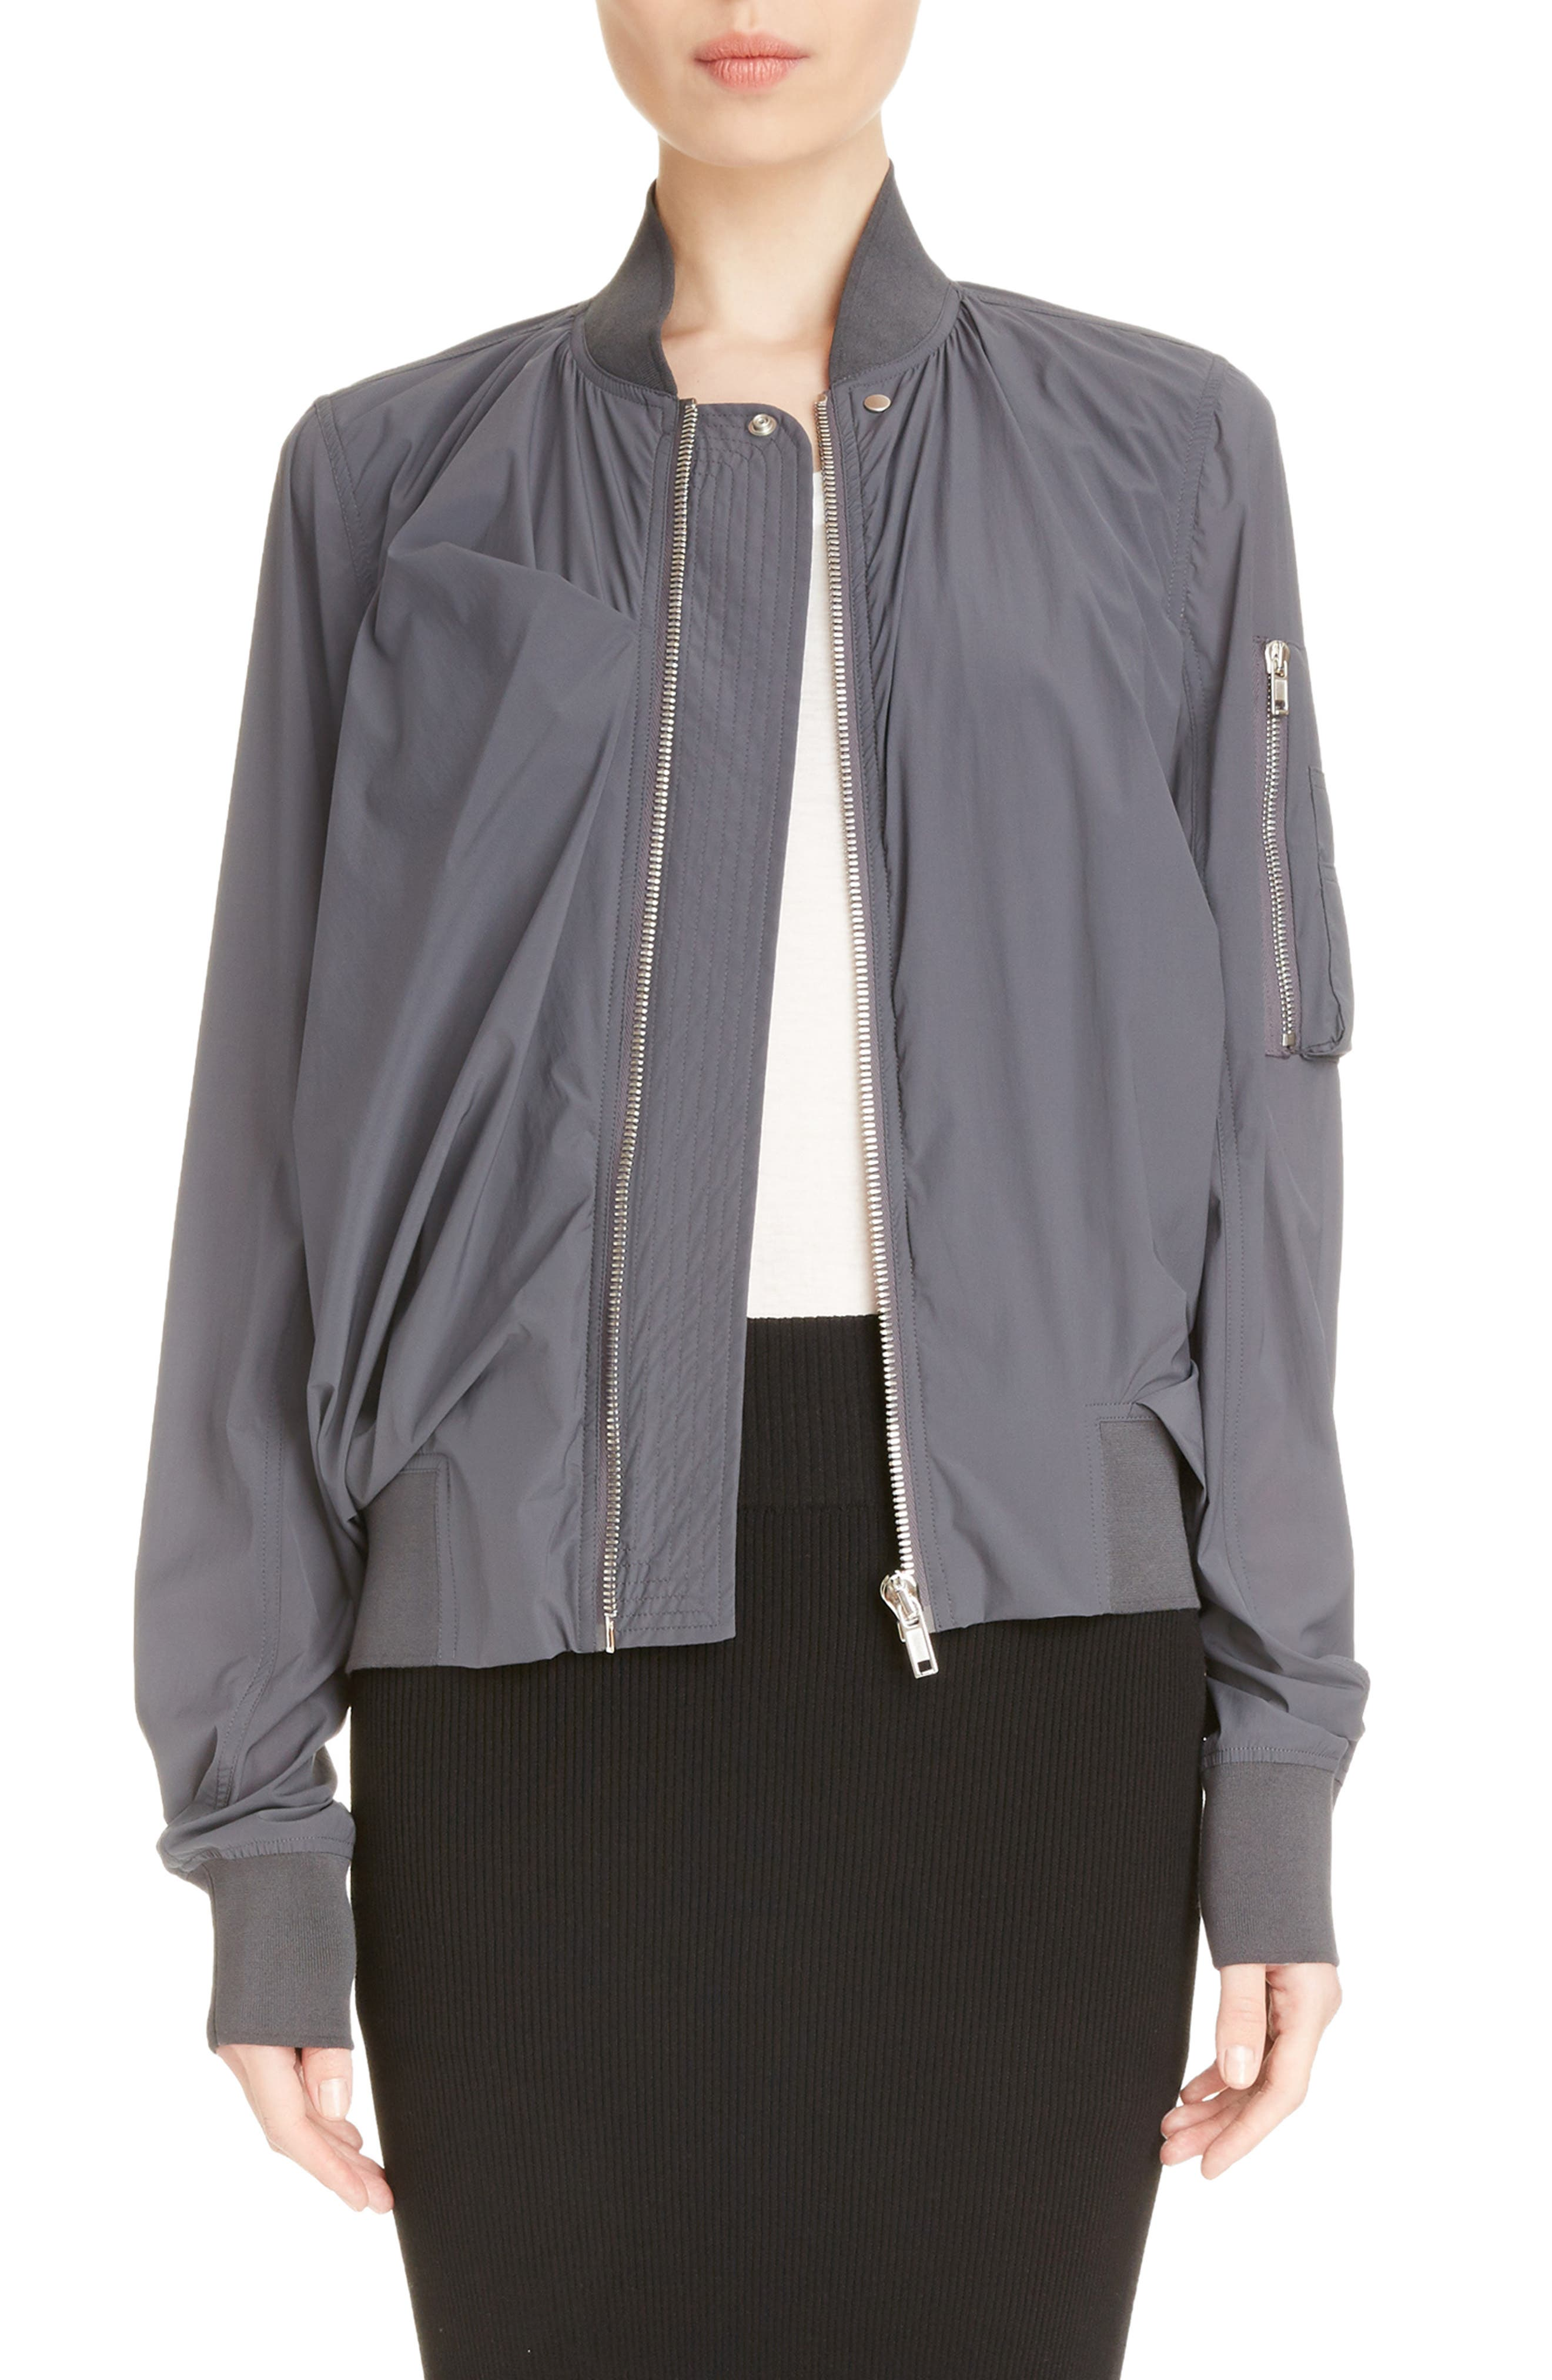 Swoop Back Bomber,                             Main thumbnail 1, color,                             Iron